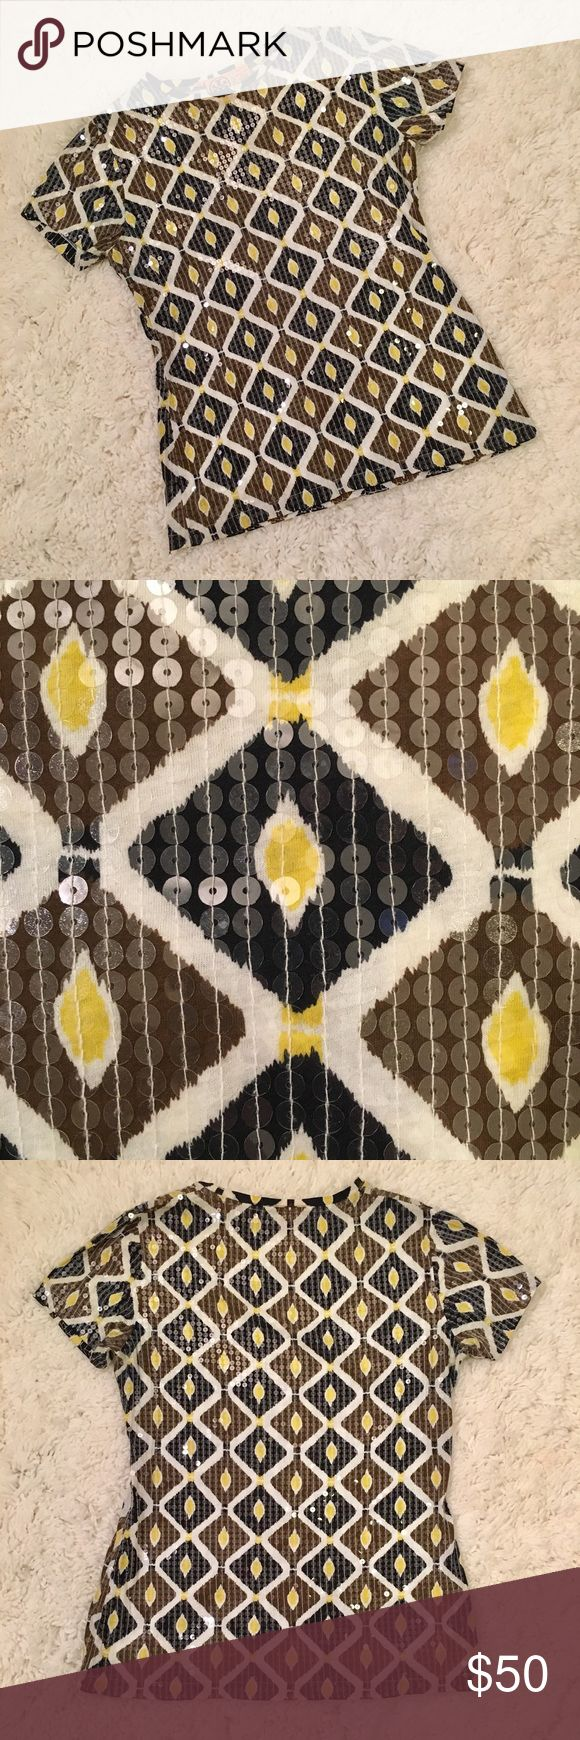 Tory Burch Sequin Patterned Short Sleeve Top Tory Burch short sleeve top. Size S. Beautiful sequin detailing. Neutral color palette of brown, cream, black  & yellow. Diamond pattern with delicate white stitching. Excellent condition - no flaws! Tory Burch Tops Tees - Short Sleeve